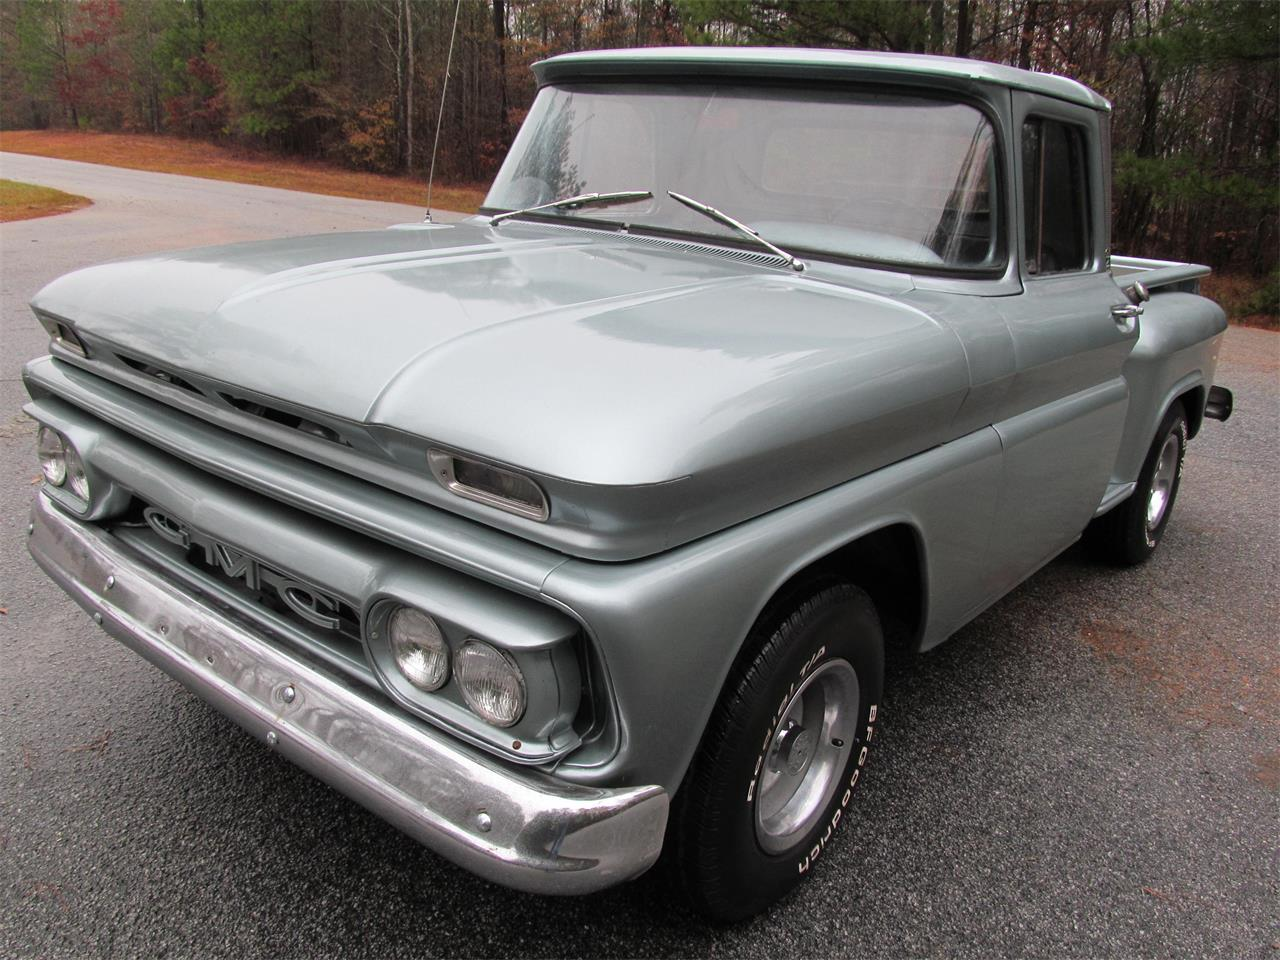 Large Picture of 1963 C10 - $12,900.00 Offered by Peachtree Classic Cars - MK17